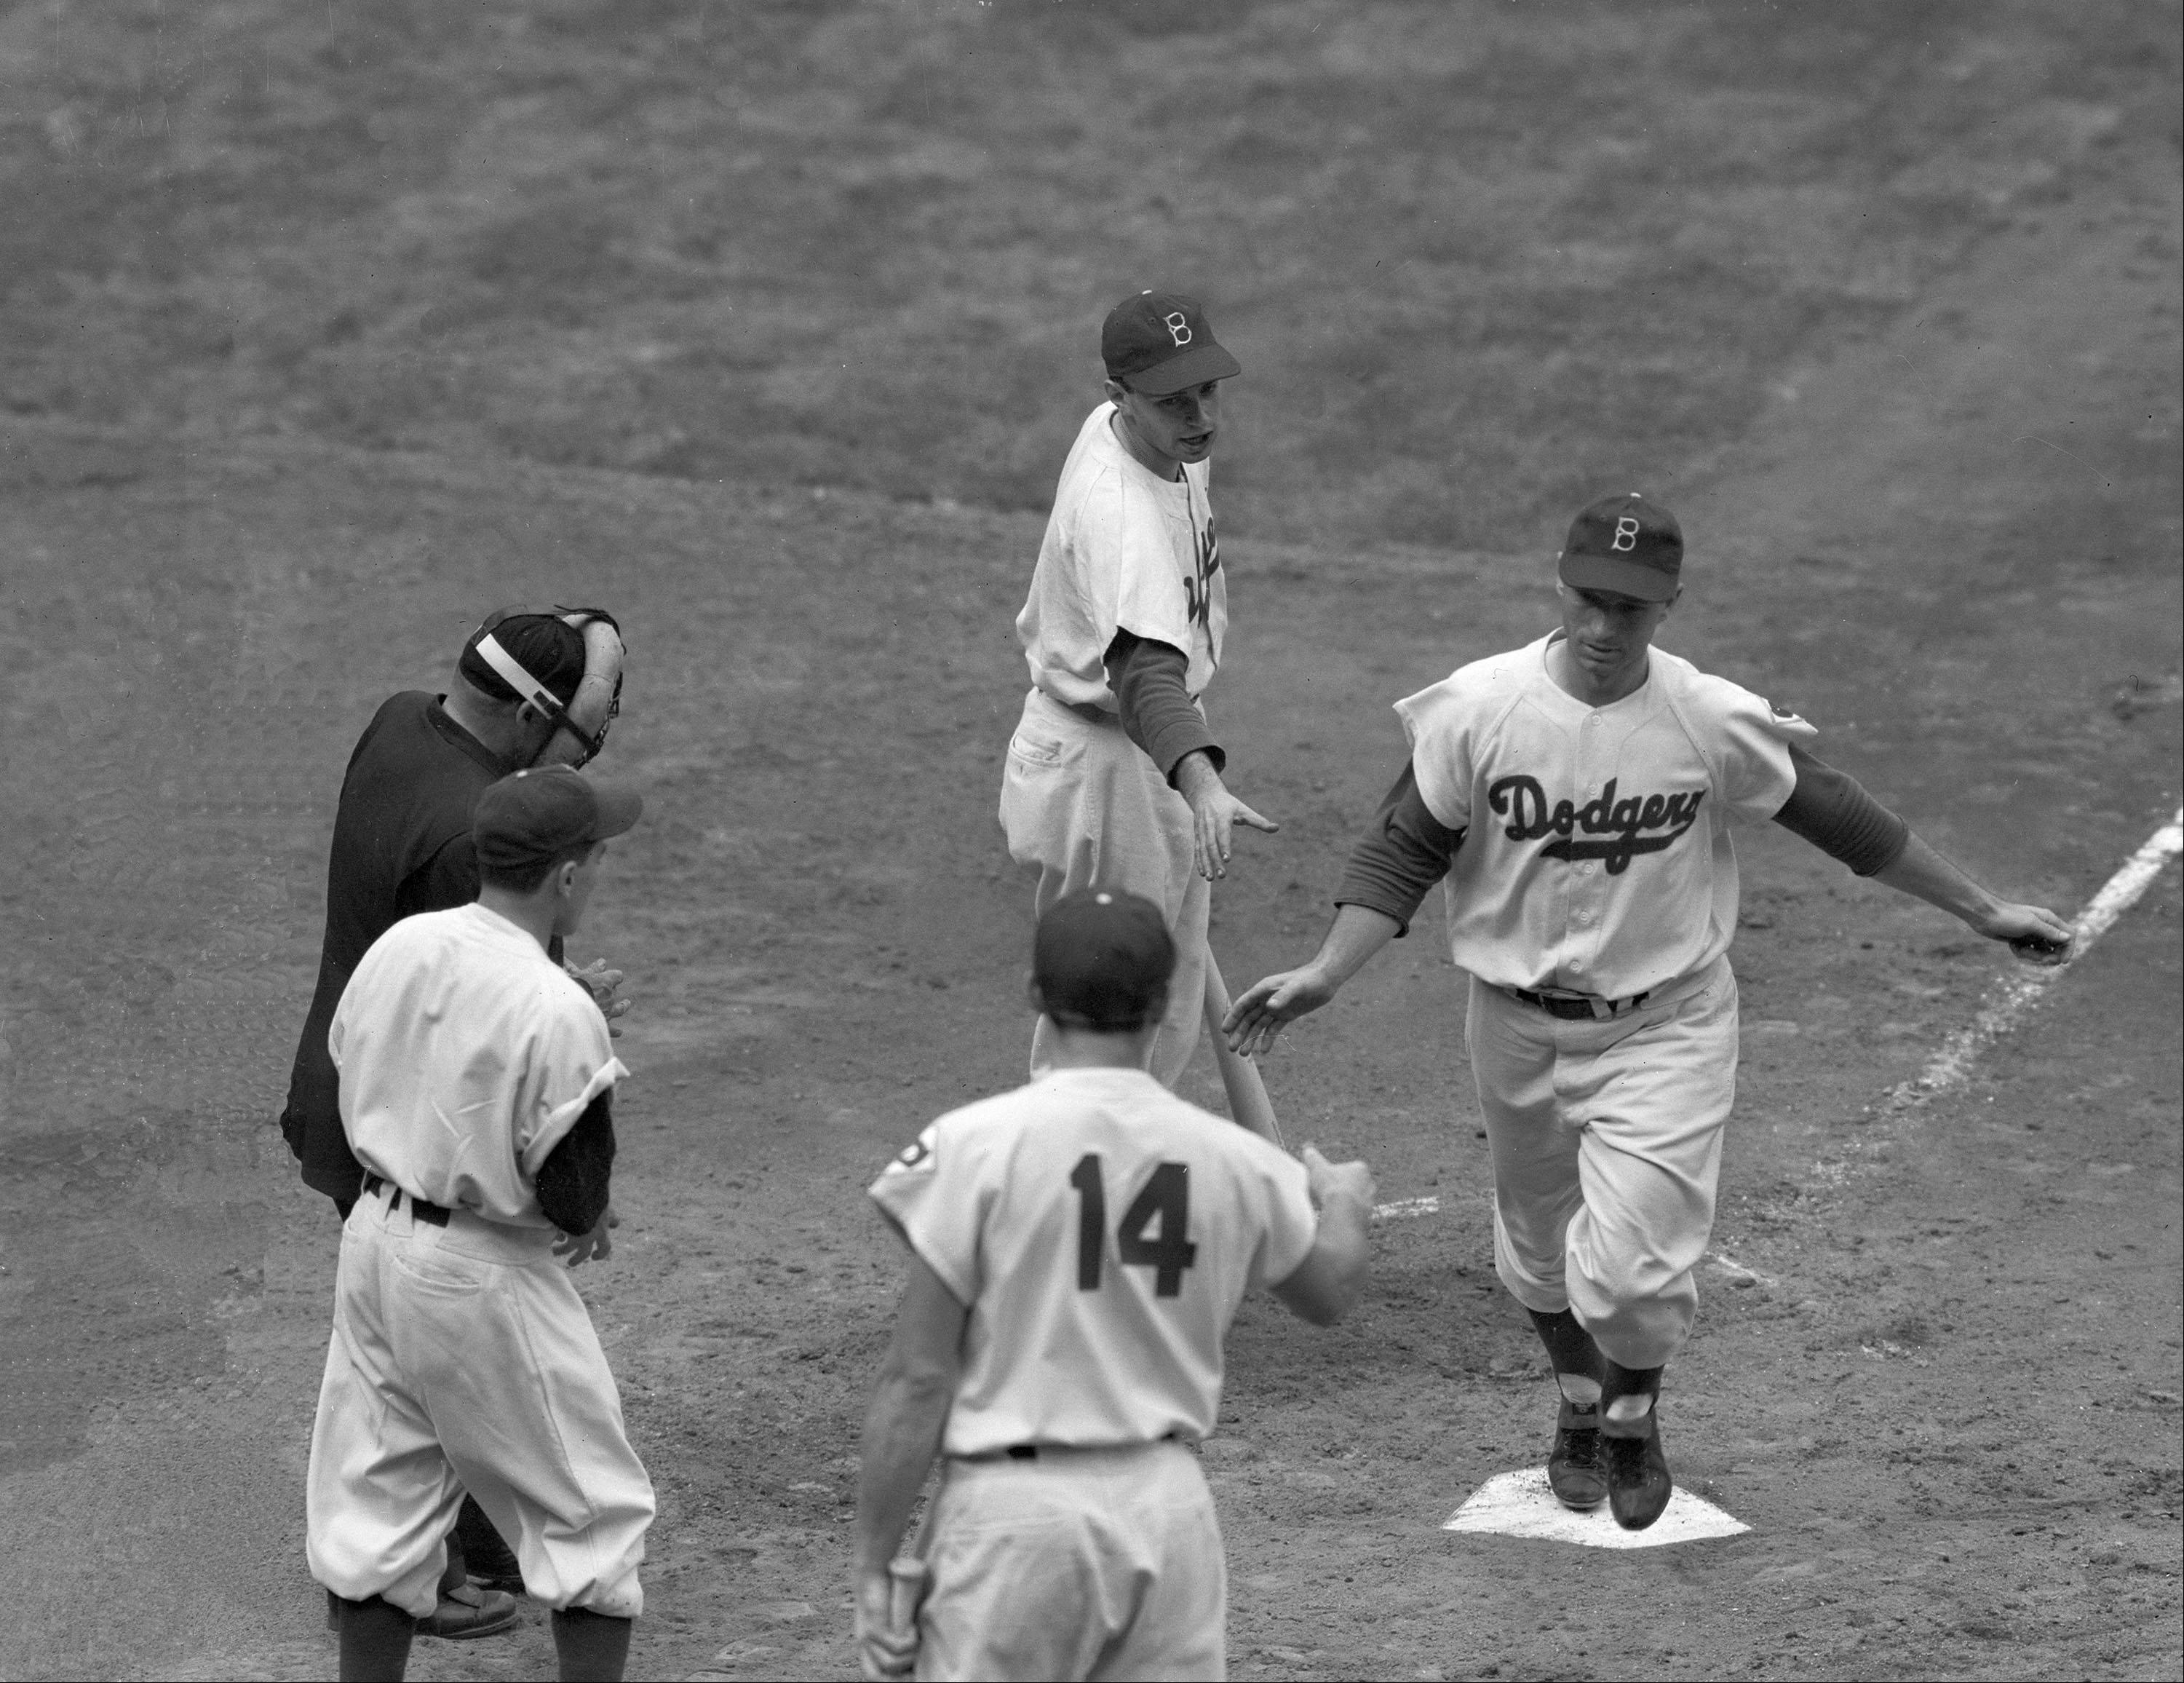 Scoring the first run in a memorable three-game series to decide the 1951 pennant, Brooklyn Dodger Andy Pafko touches the plate after hitting a homer. The series would end with Pafko watching a home run off the bat of Bobby Thomson to win the pennant for the New York Giants.